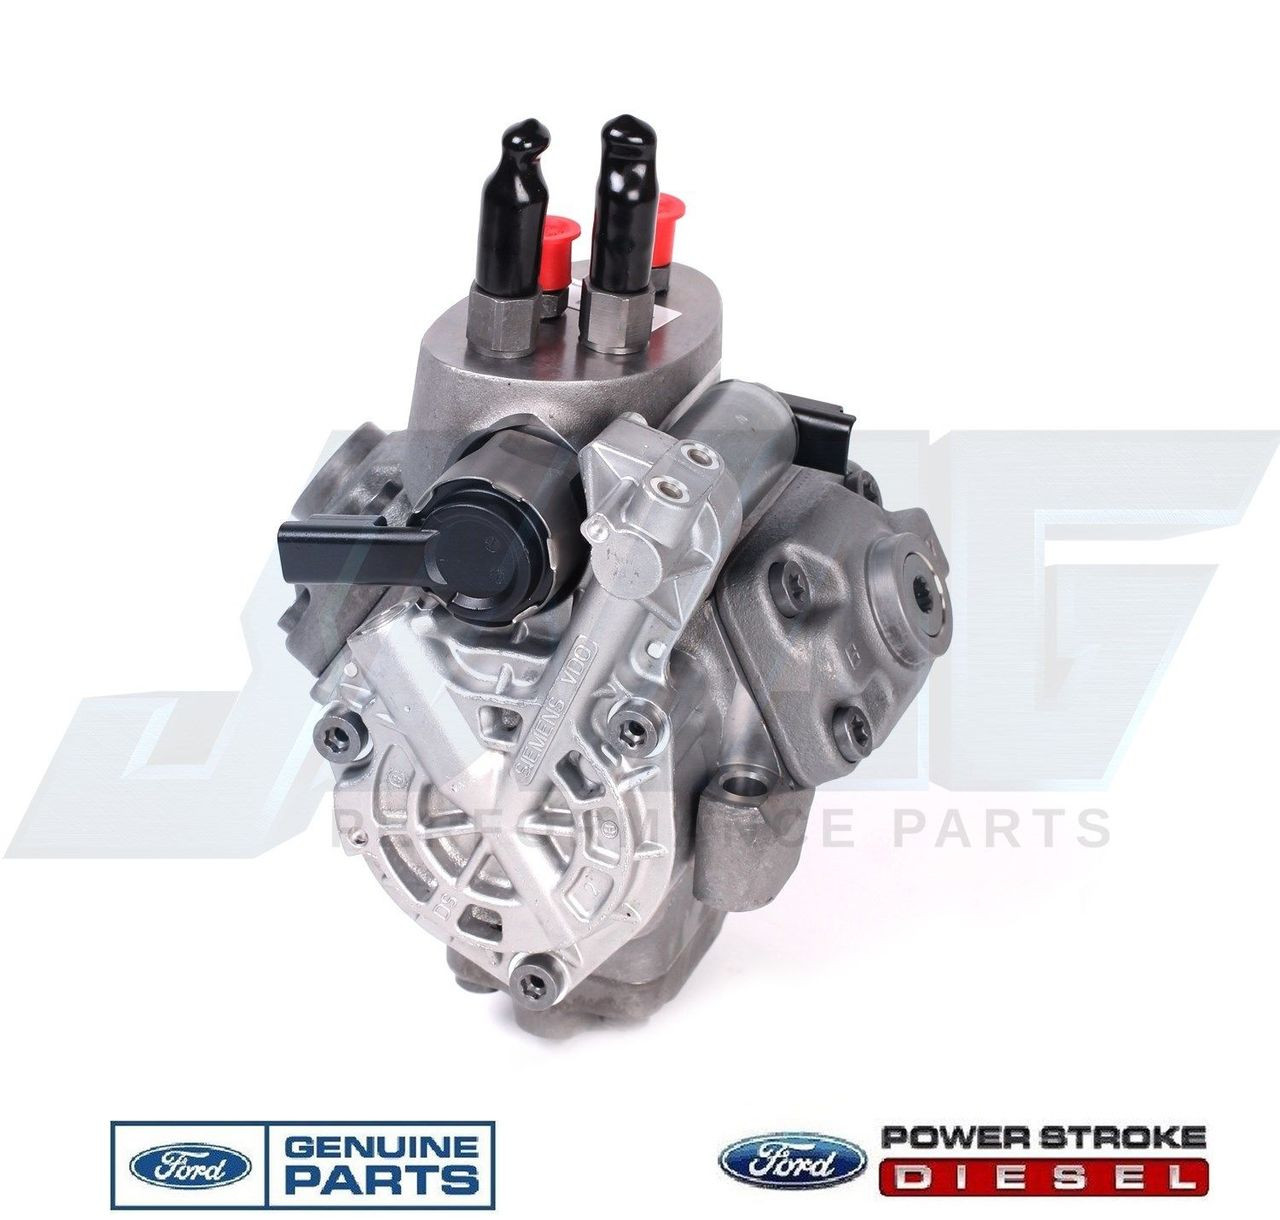 6 4L OEM HIGH PRESSURE FUEL INJECTION PUMP - HPFP